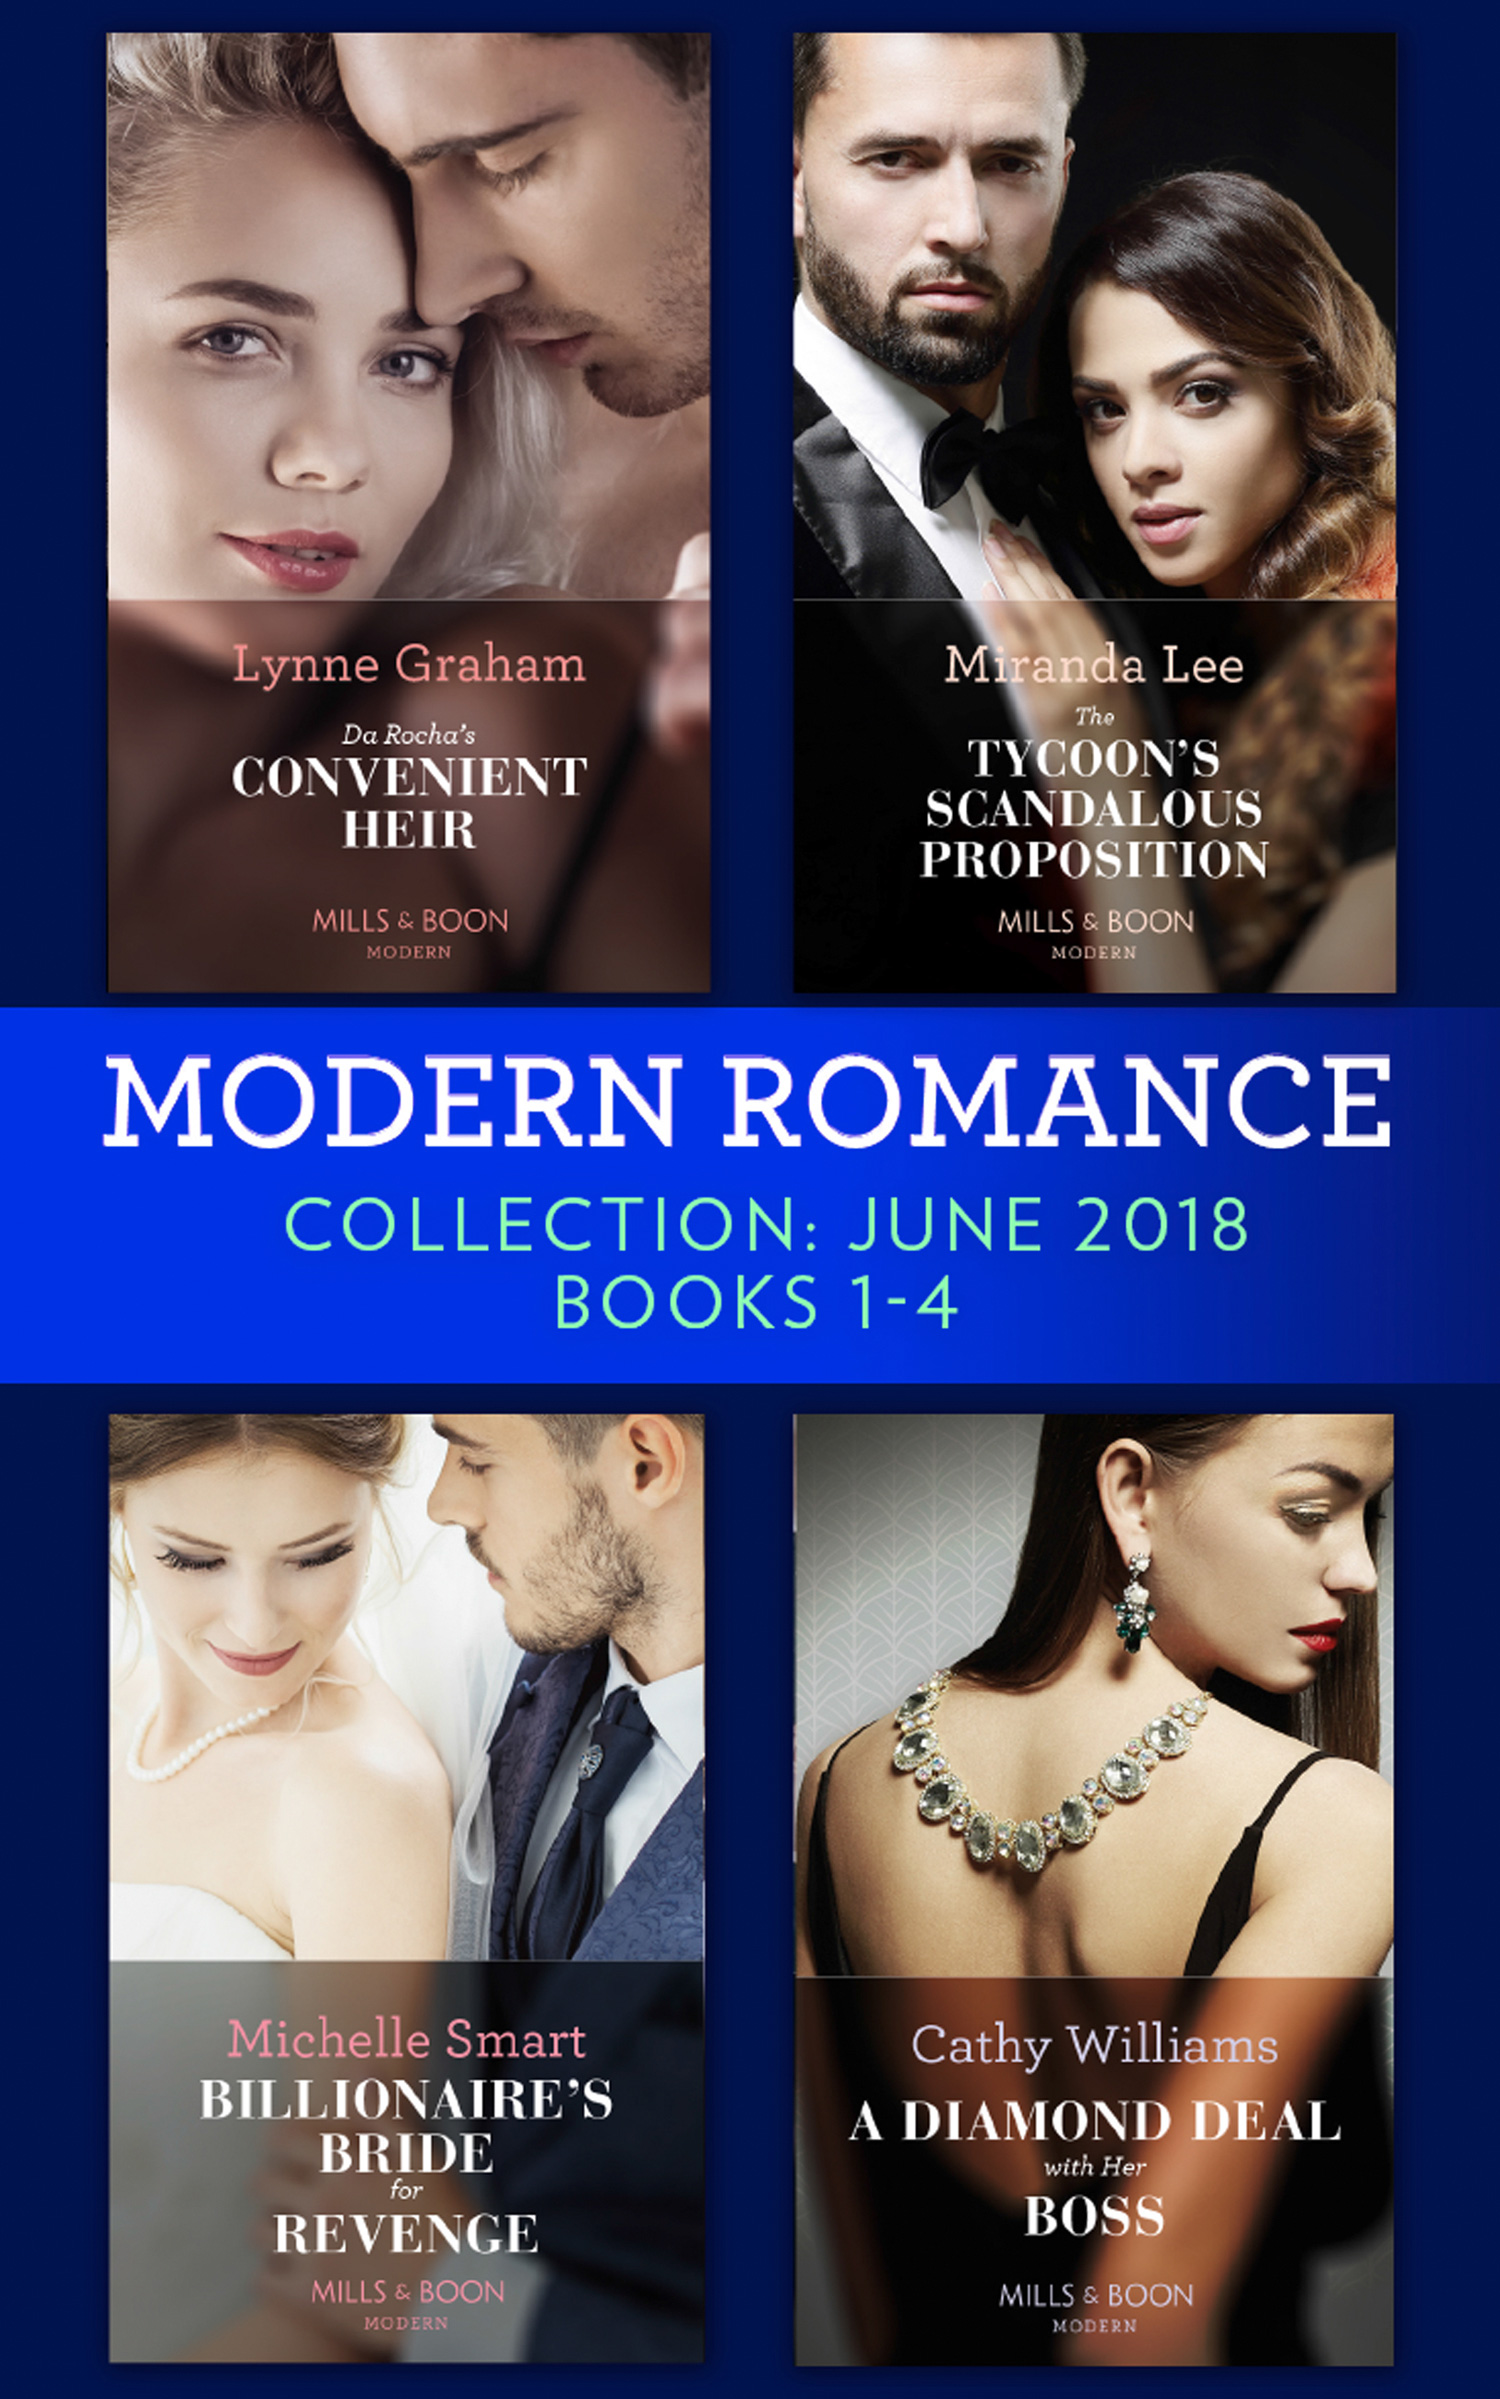 Modern Romance Collection: June 2018 Books 1 - 4